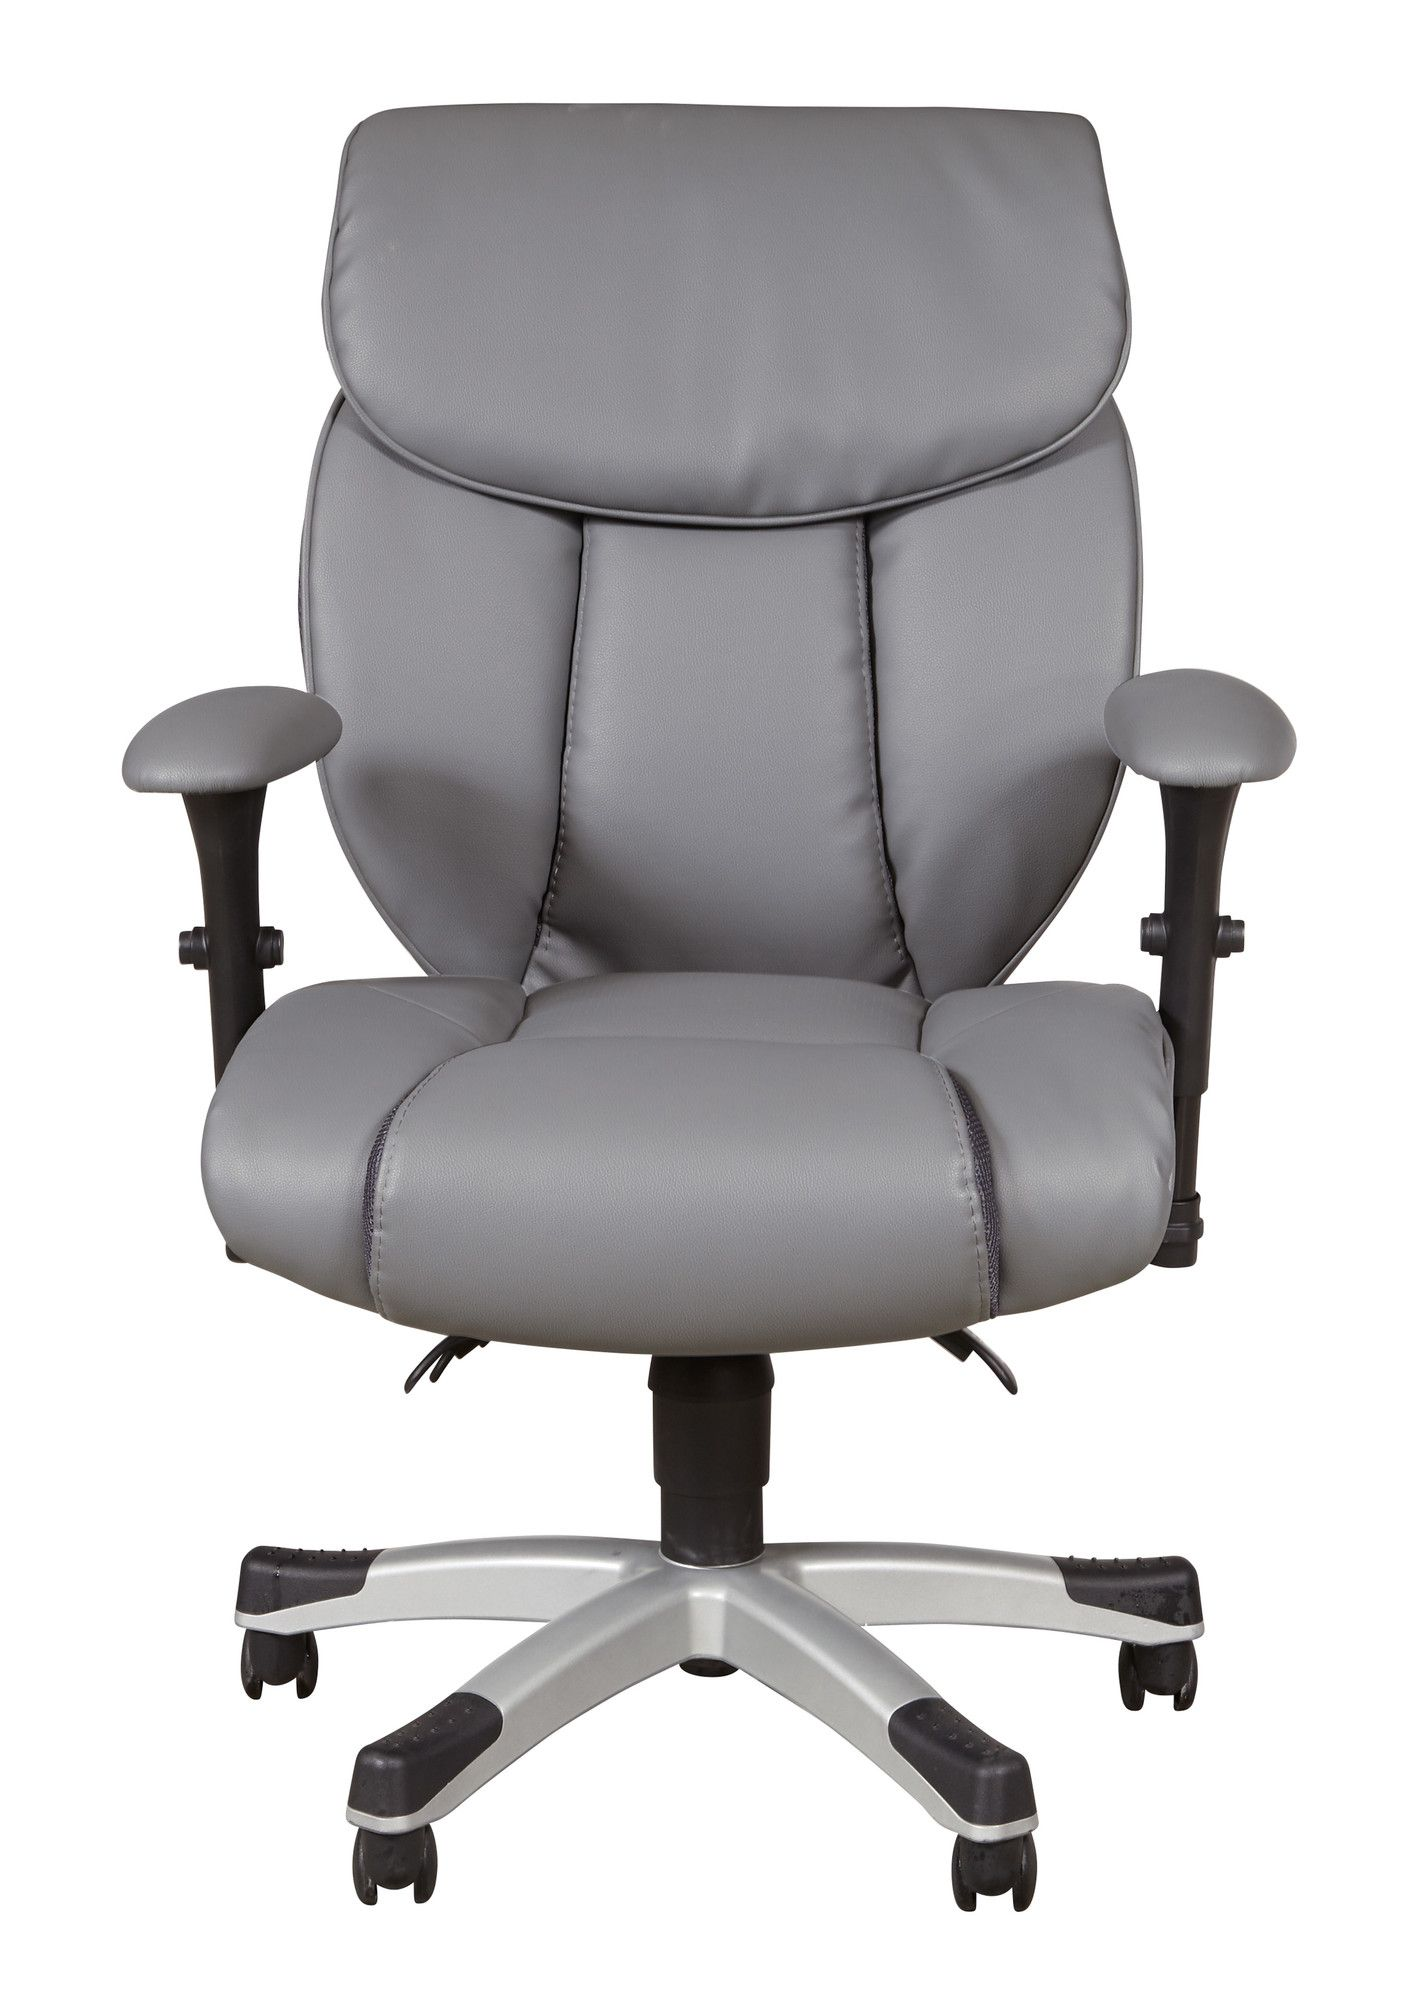 Arevalo desk chair products pinterest desks memory foam and